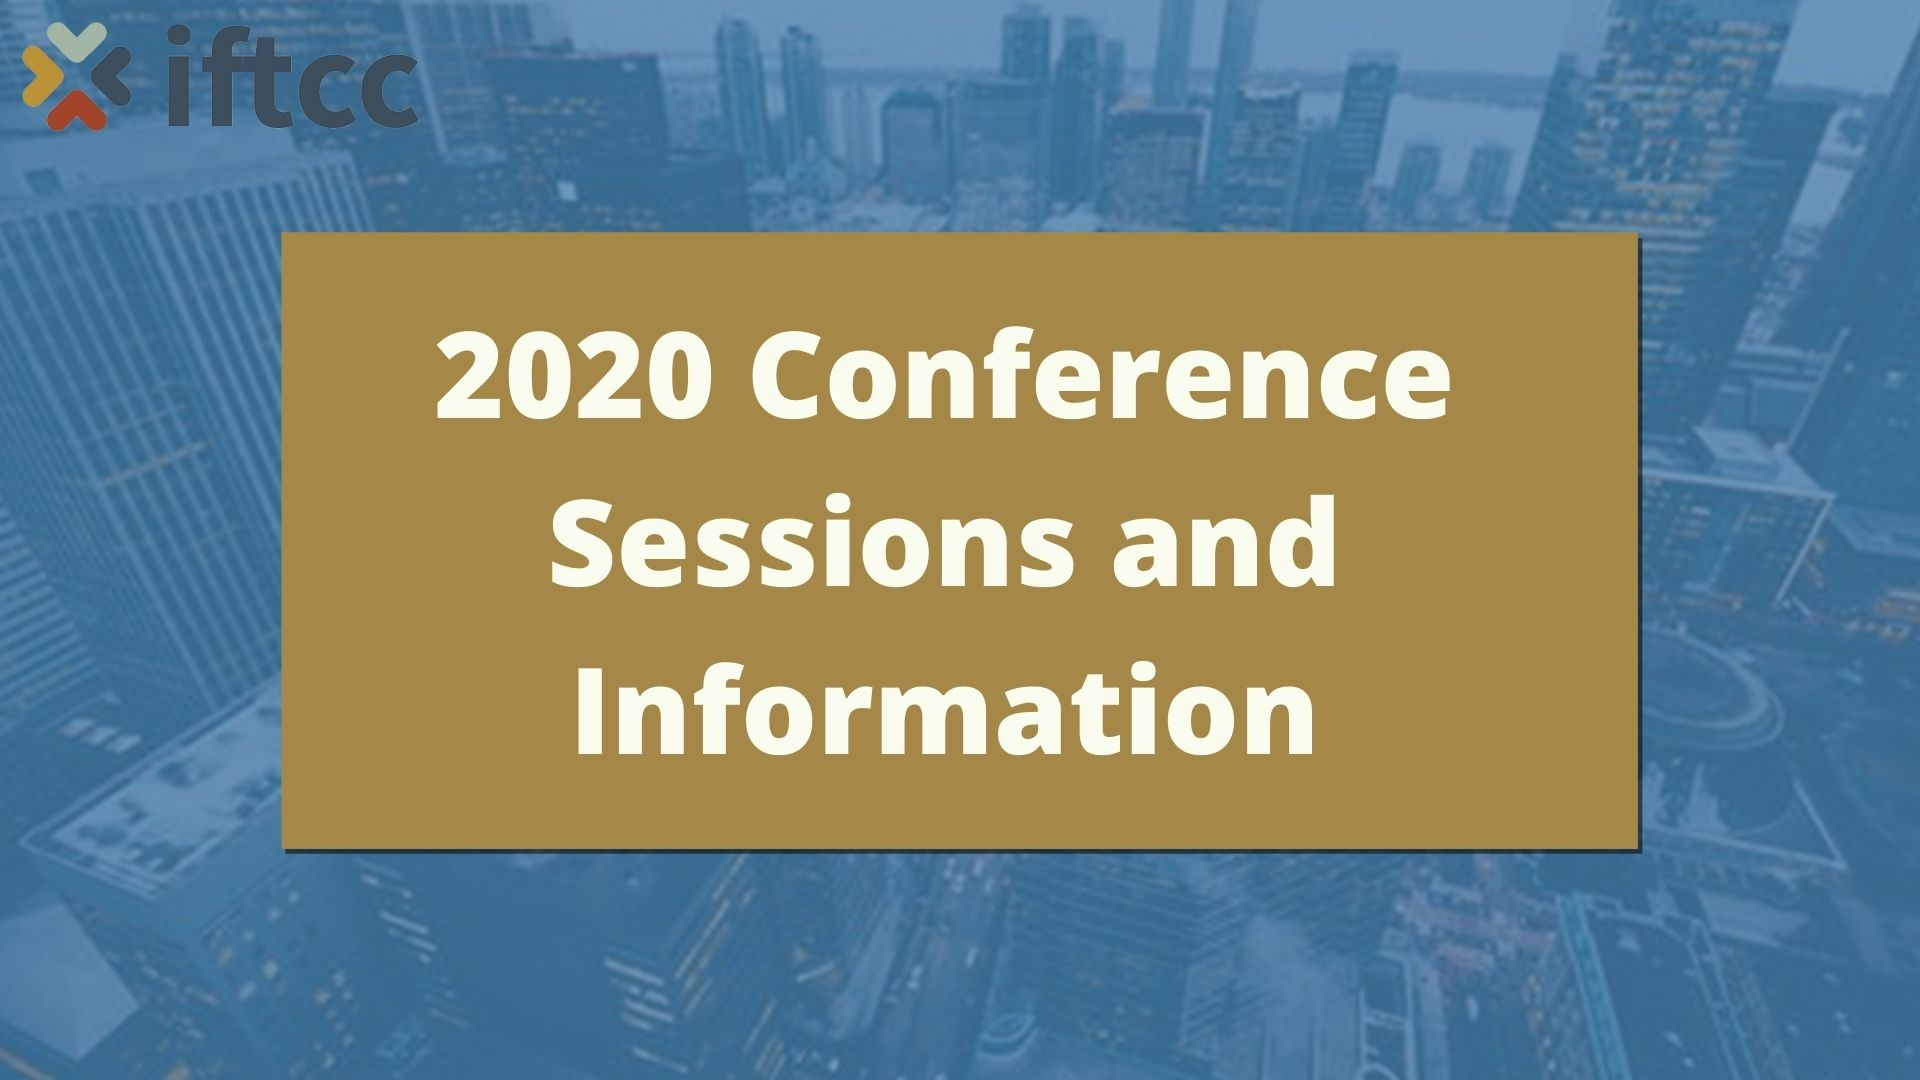 2020 Conference Sessions and Information